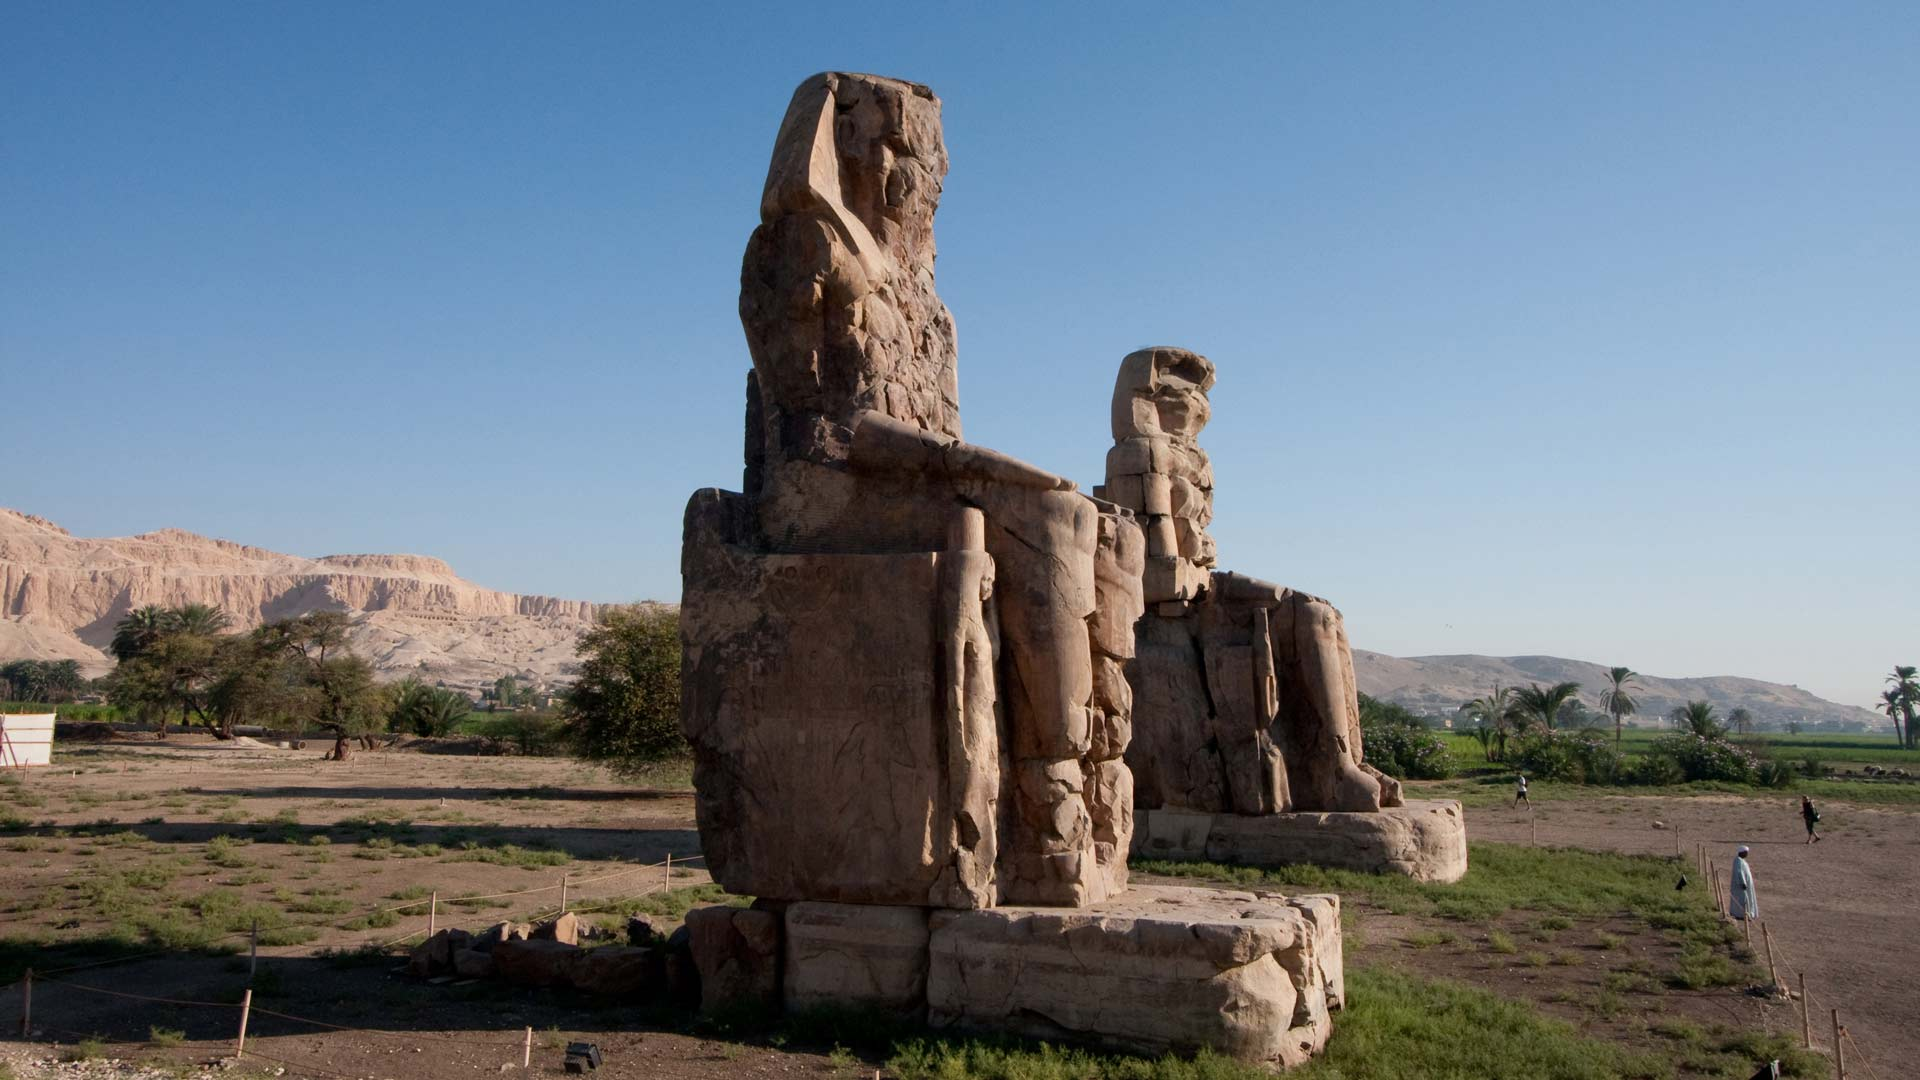 Colossi of Memnon (two massive stone statues of Pharaoh Amenhotep III), Western Thebes, Qina, Egypt